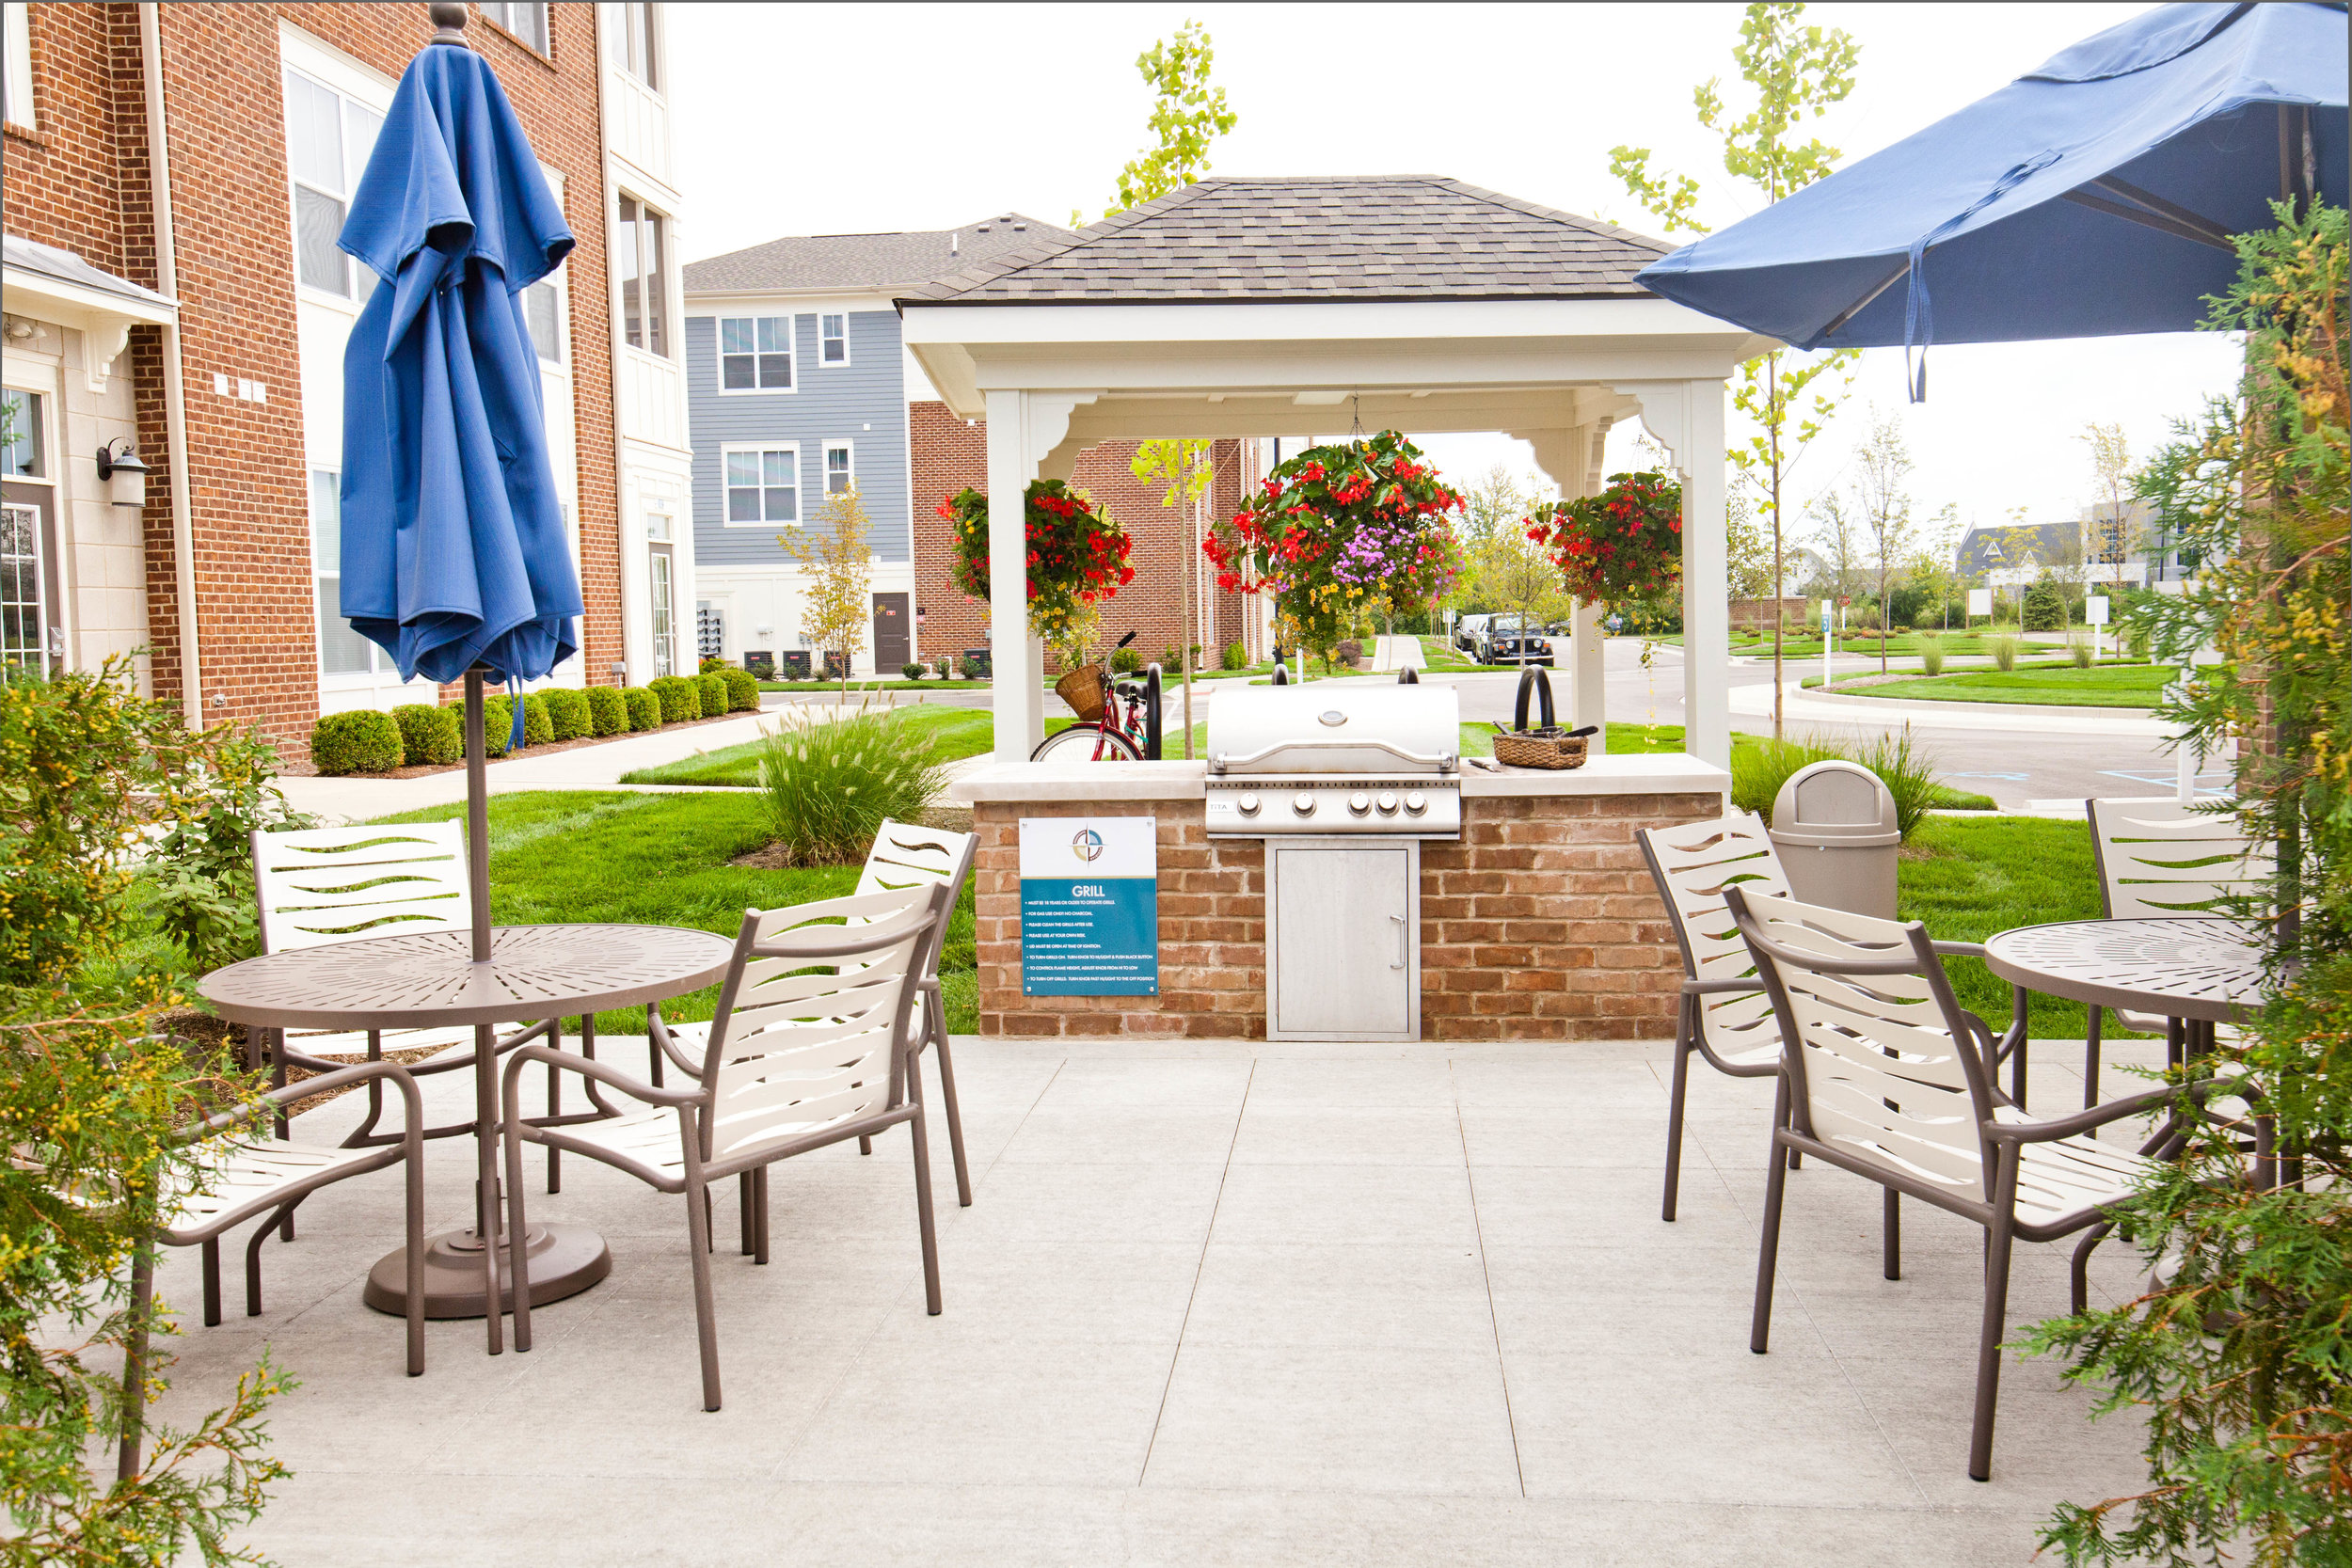 Highpointe - Picnic or grill area - fire pit (amenities).JPG